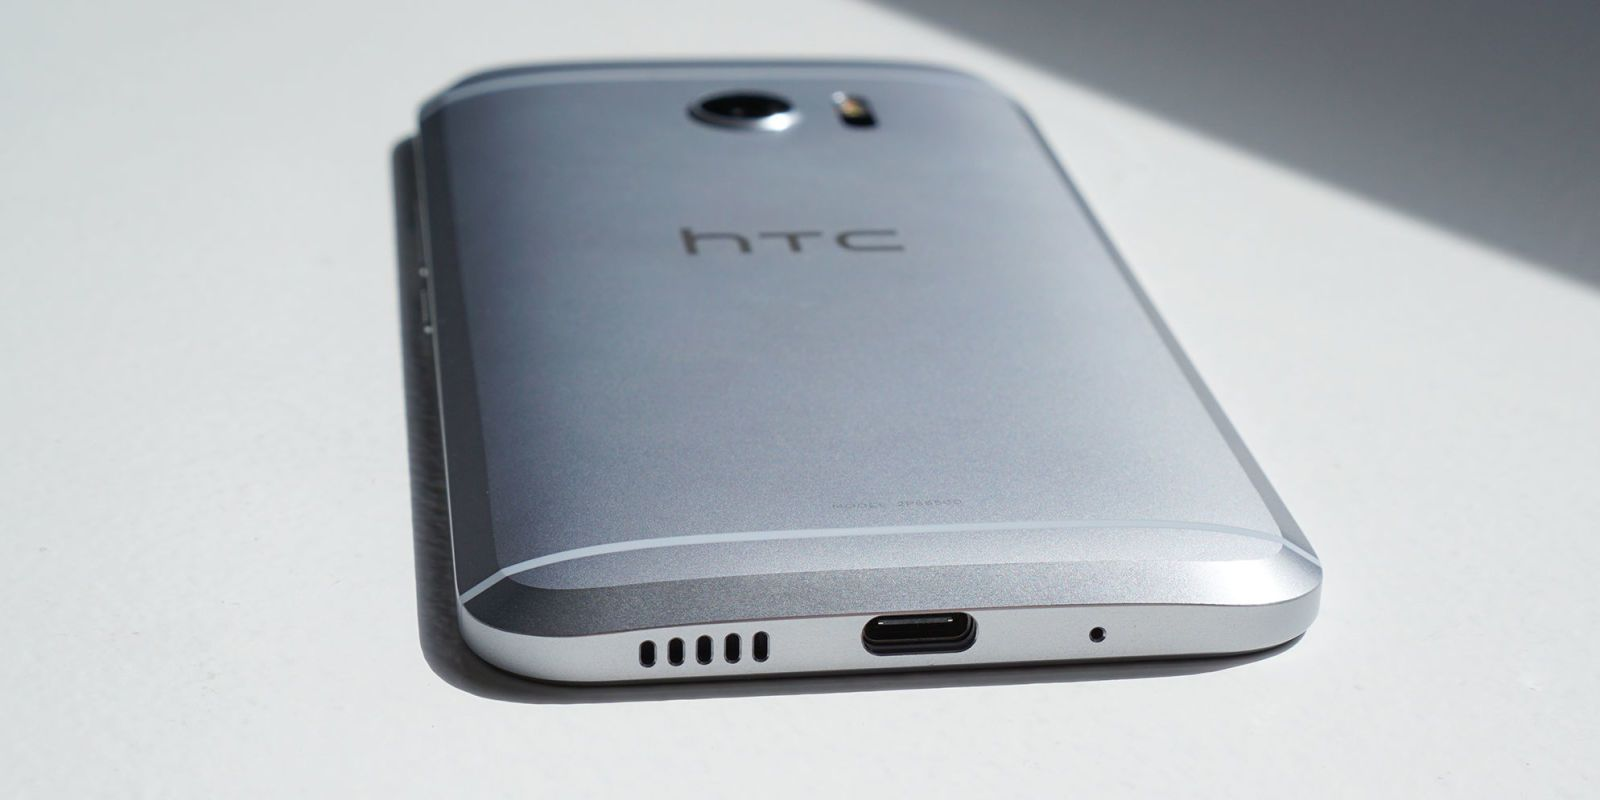 HTC 10 Full Review: A Premium Smartphone With Class-Leading Audio